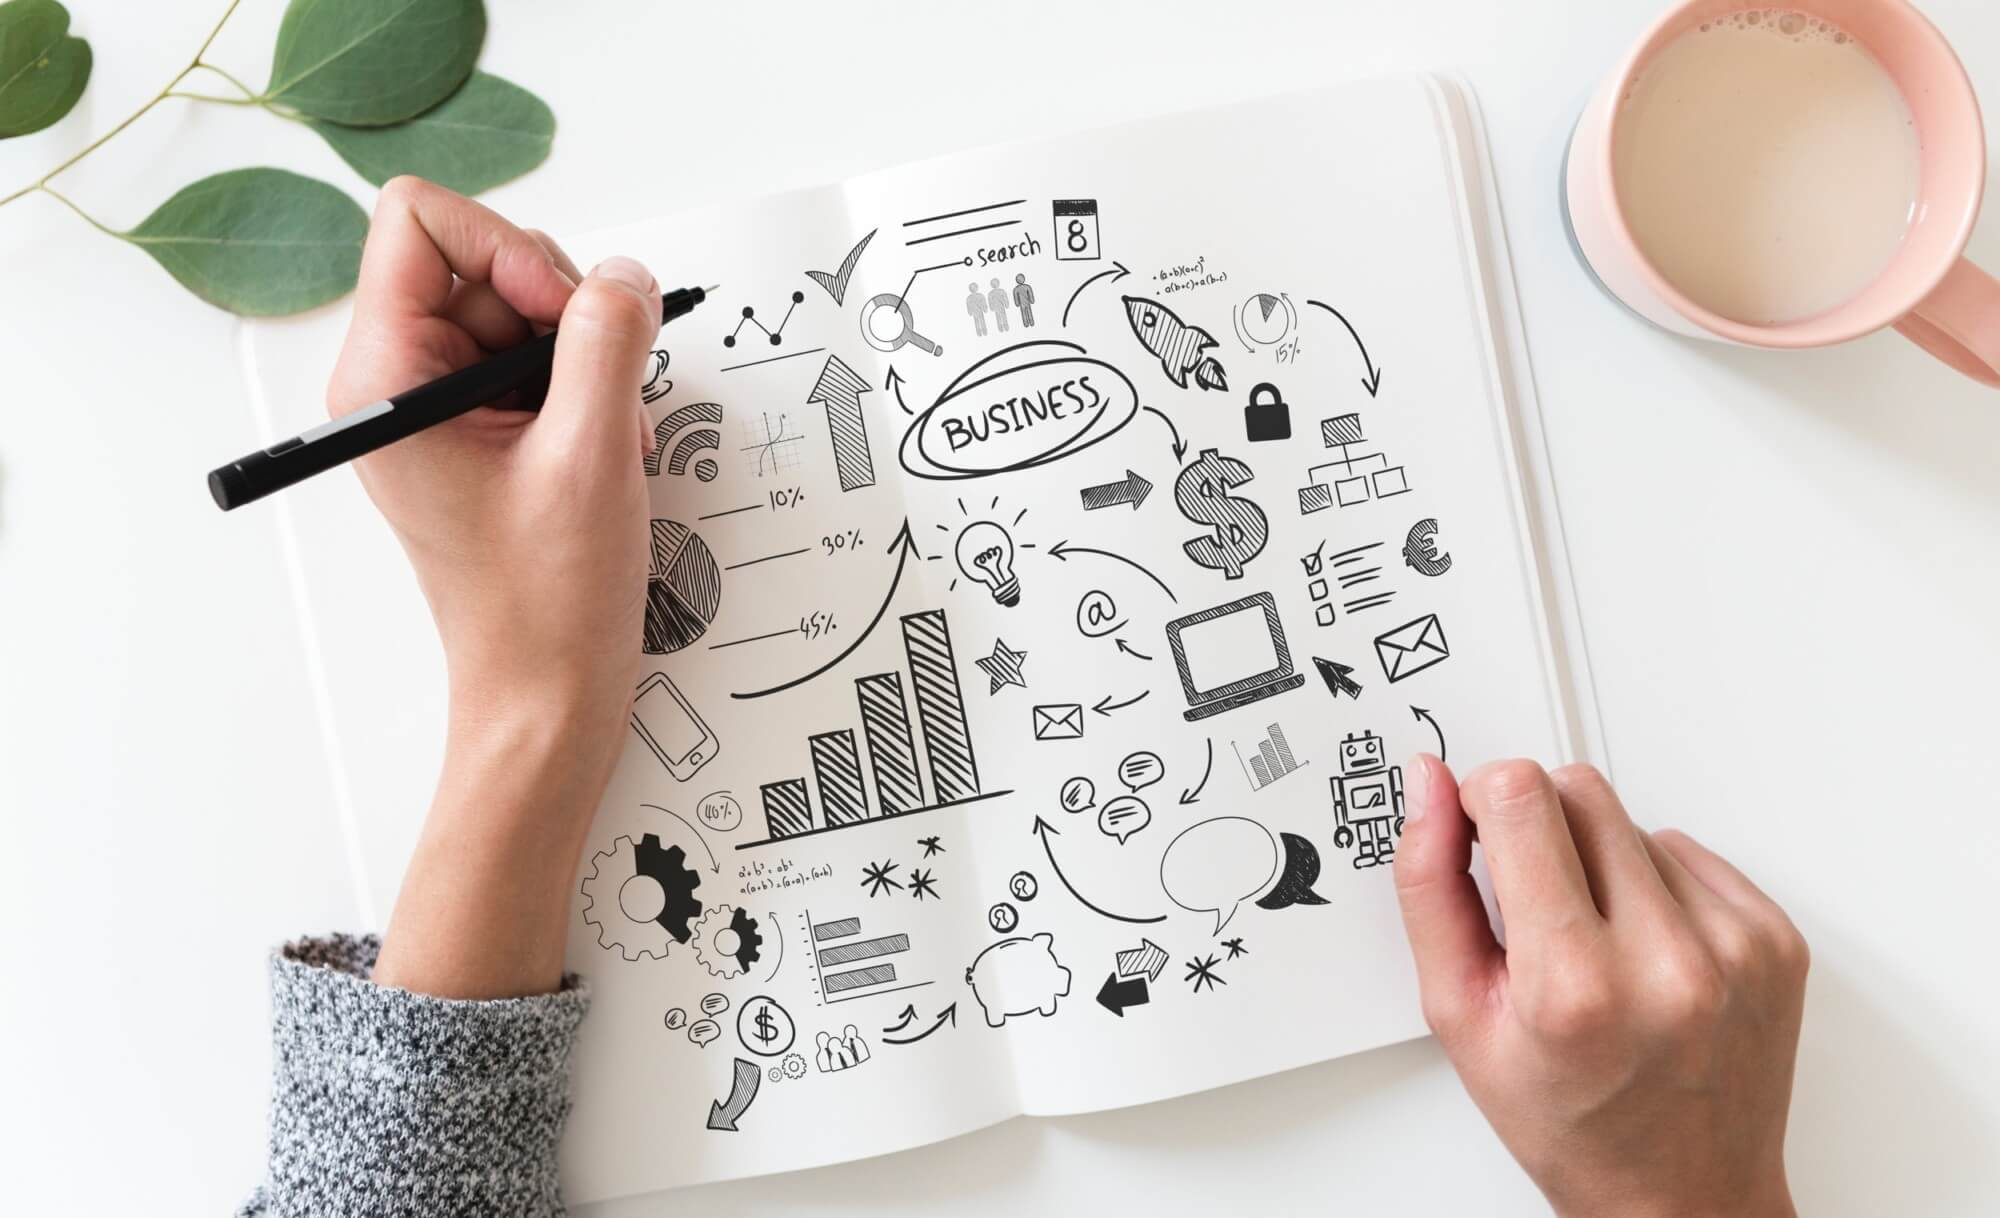 5 Effective Small Business Advertising Ideas